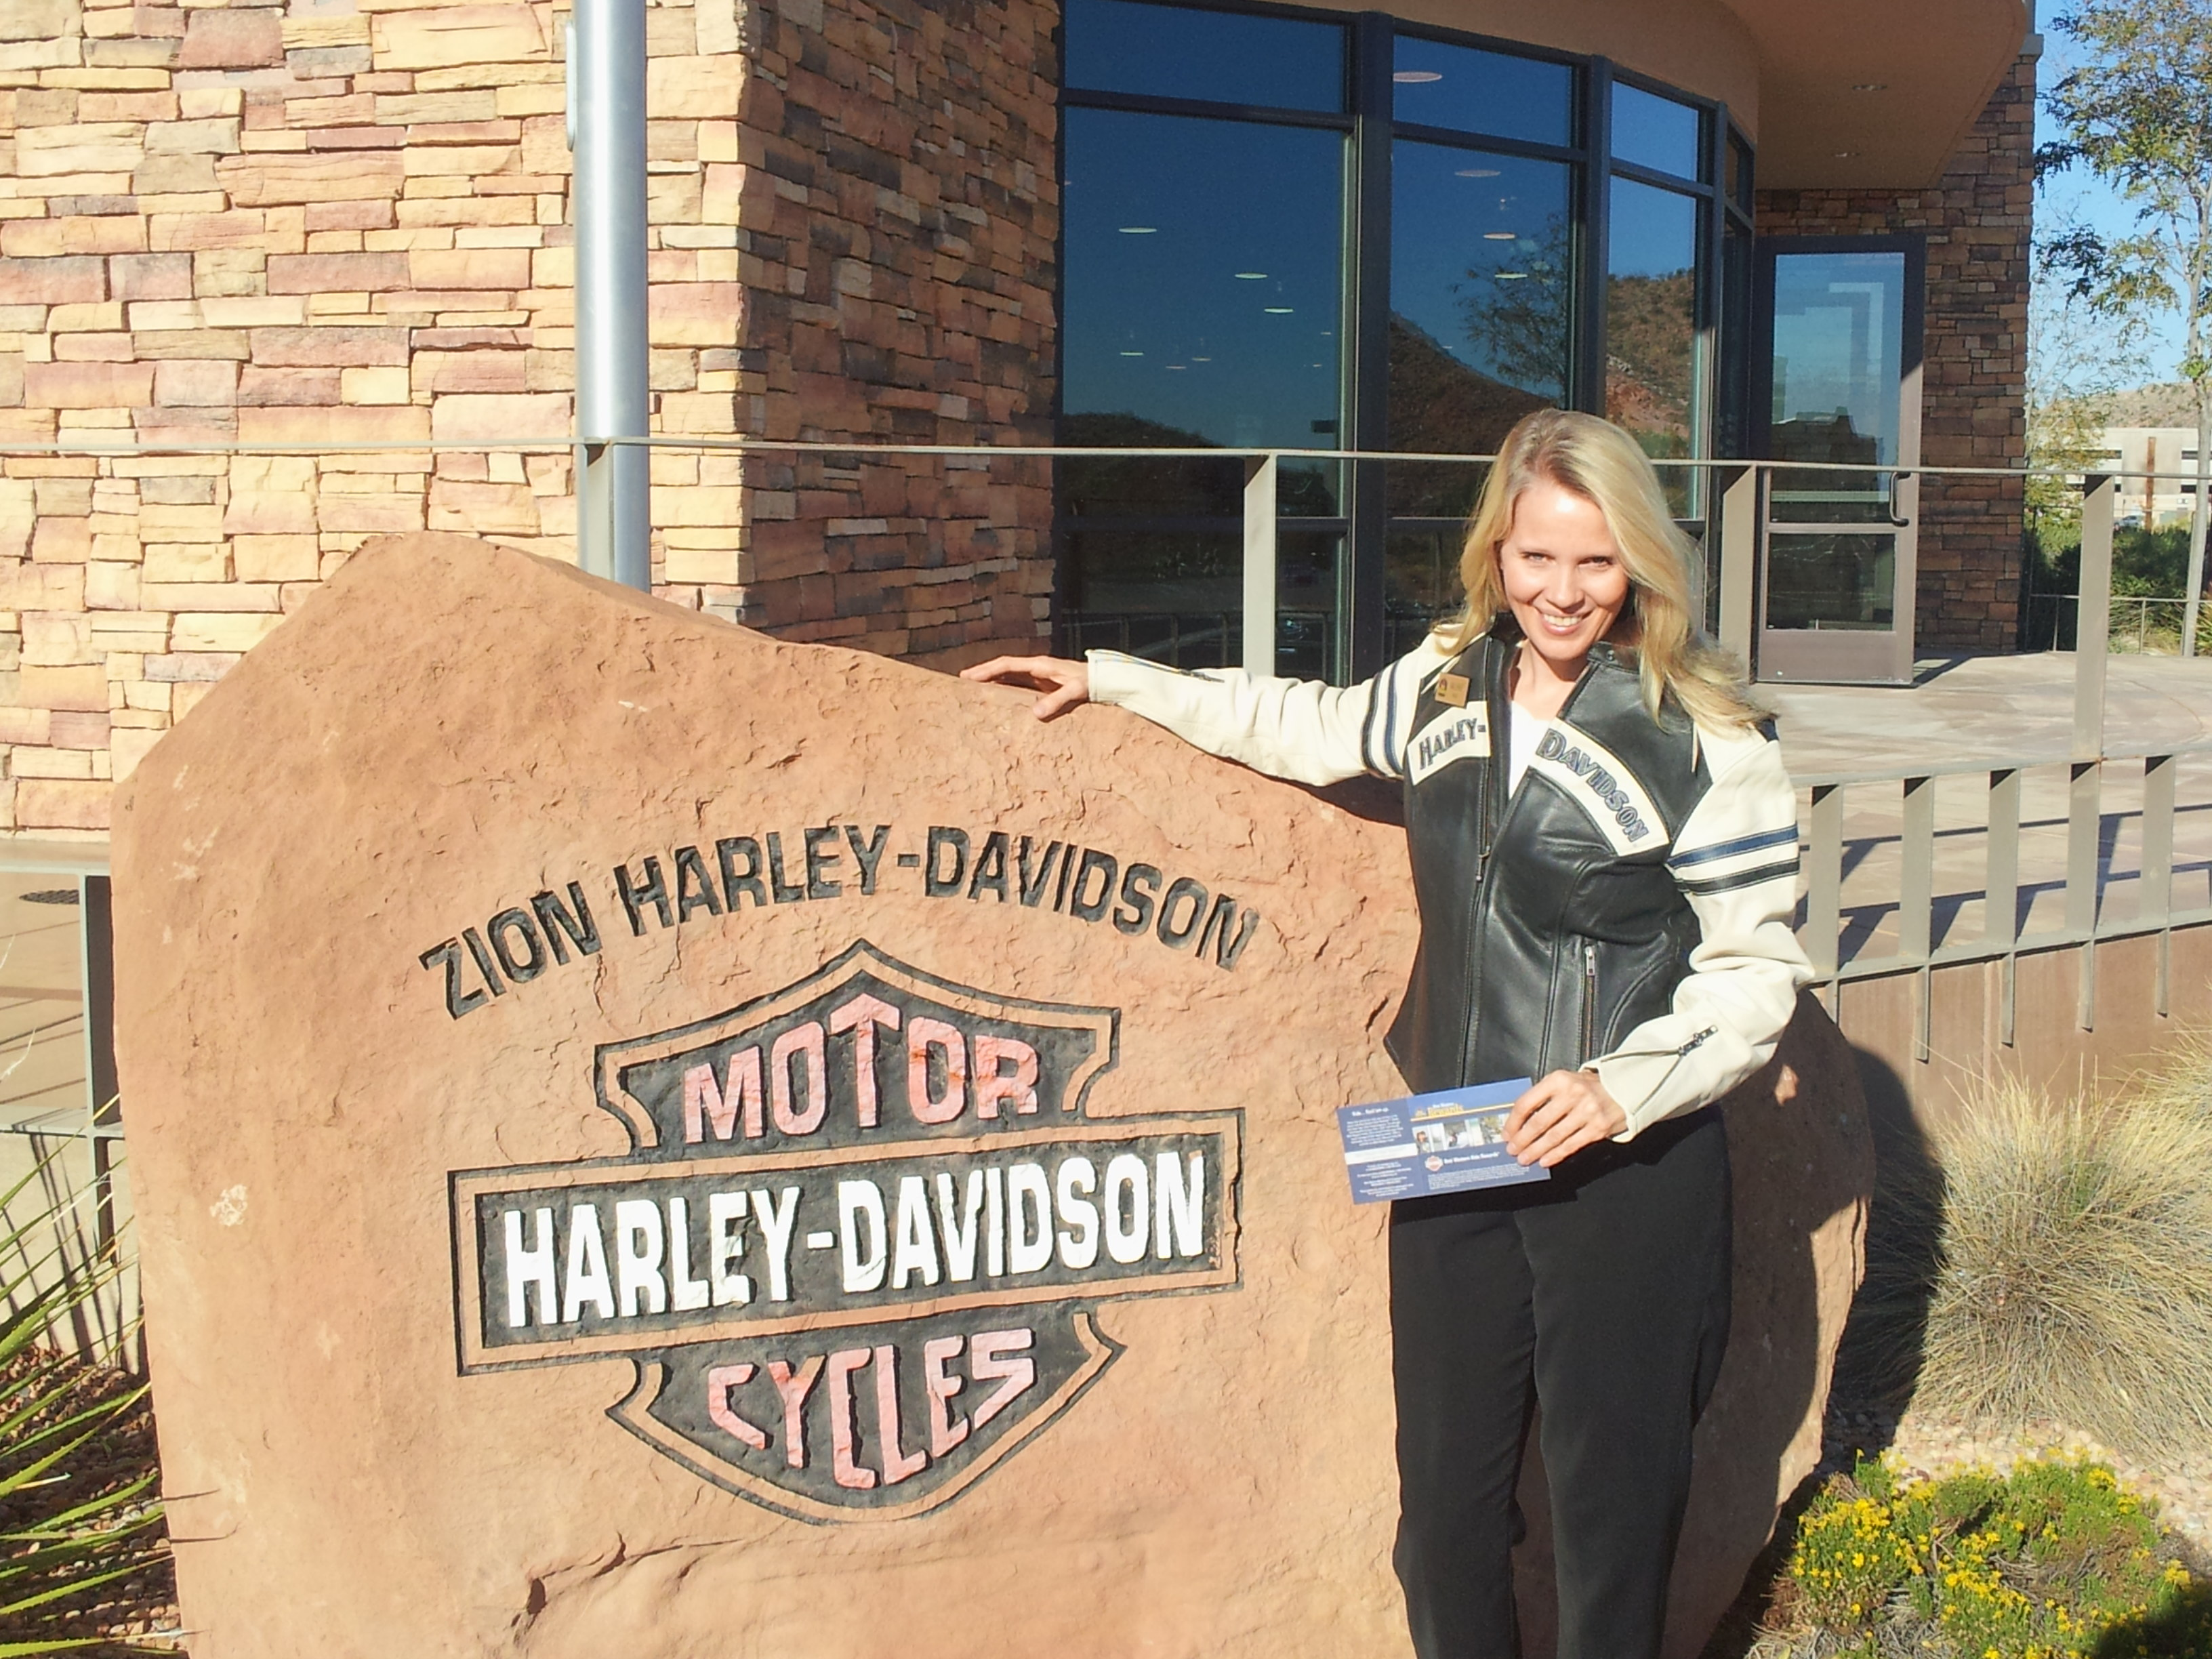 Harley-Davidson Motorcycles just 8 miles up the road.